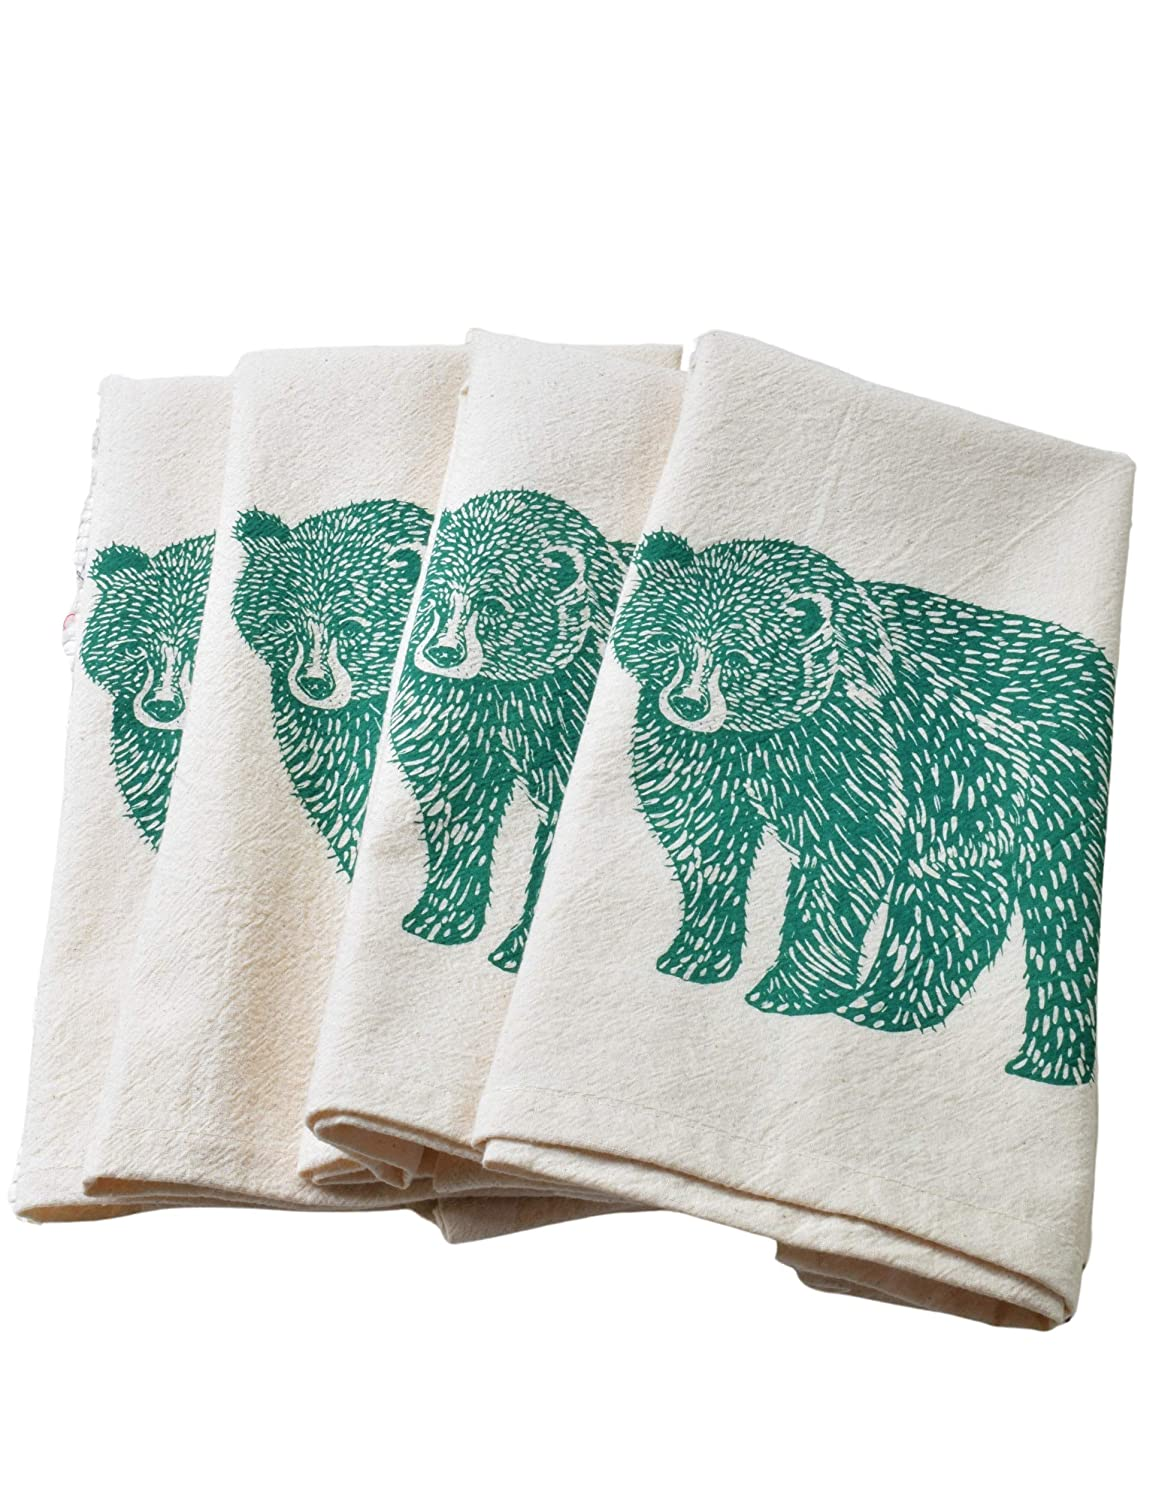 Set Super sale of 4 Organic Cotton in Bear Max 75% OFF Napkins Green